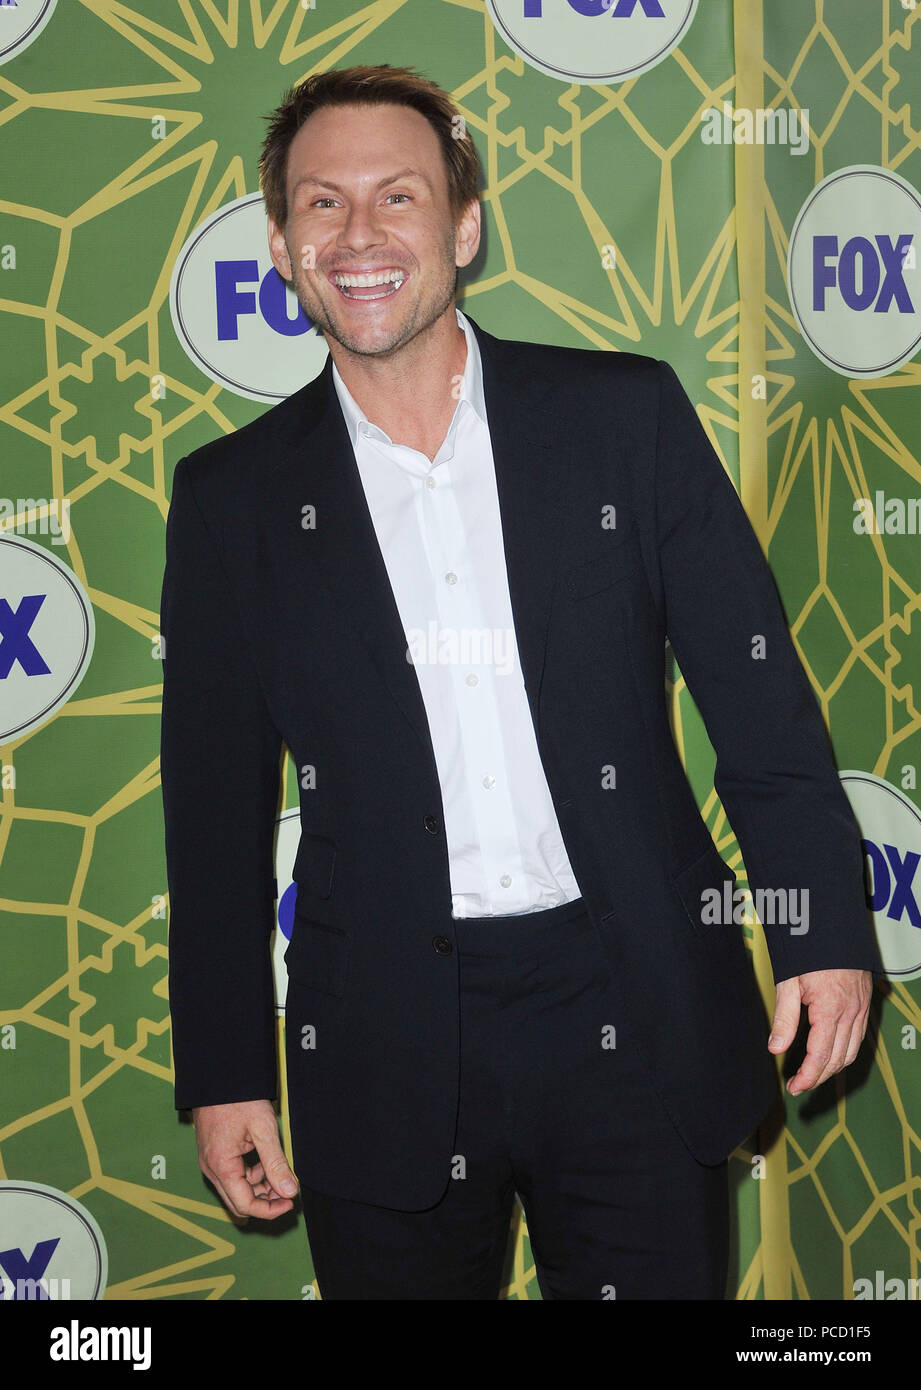 Christian Slater 34 at FOX-tca 2012 at the Green castle in